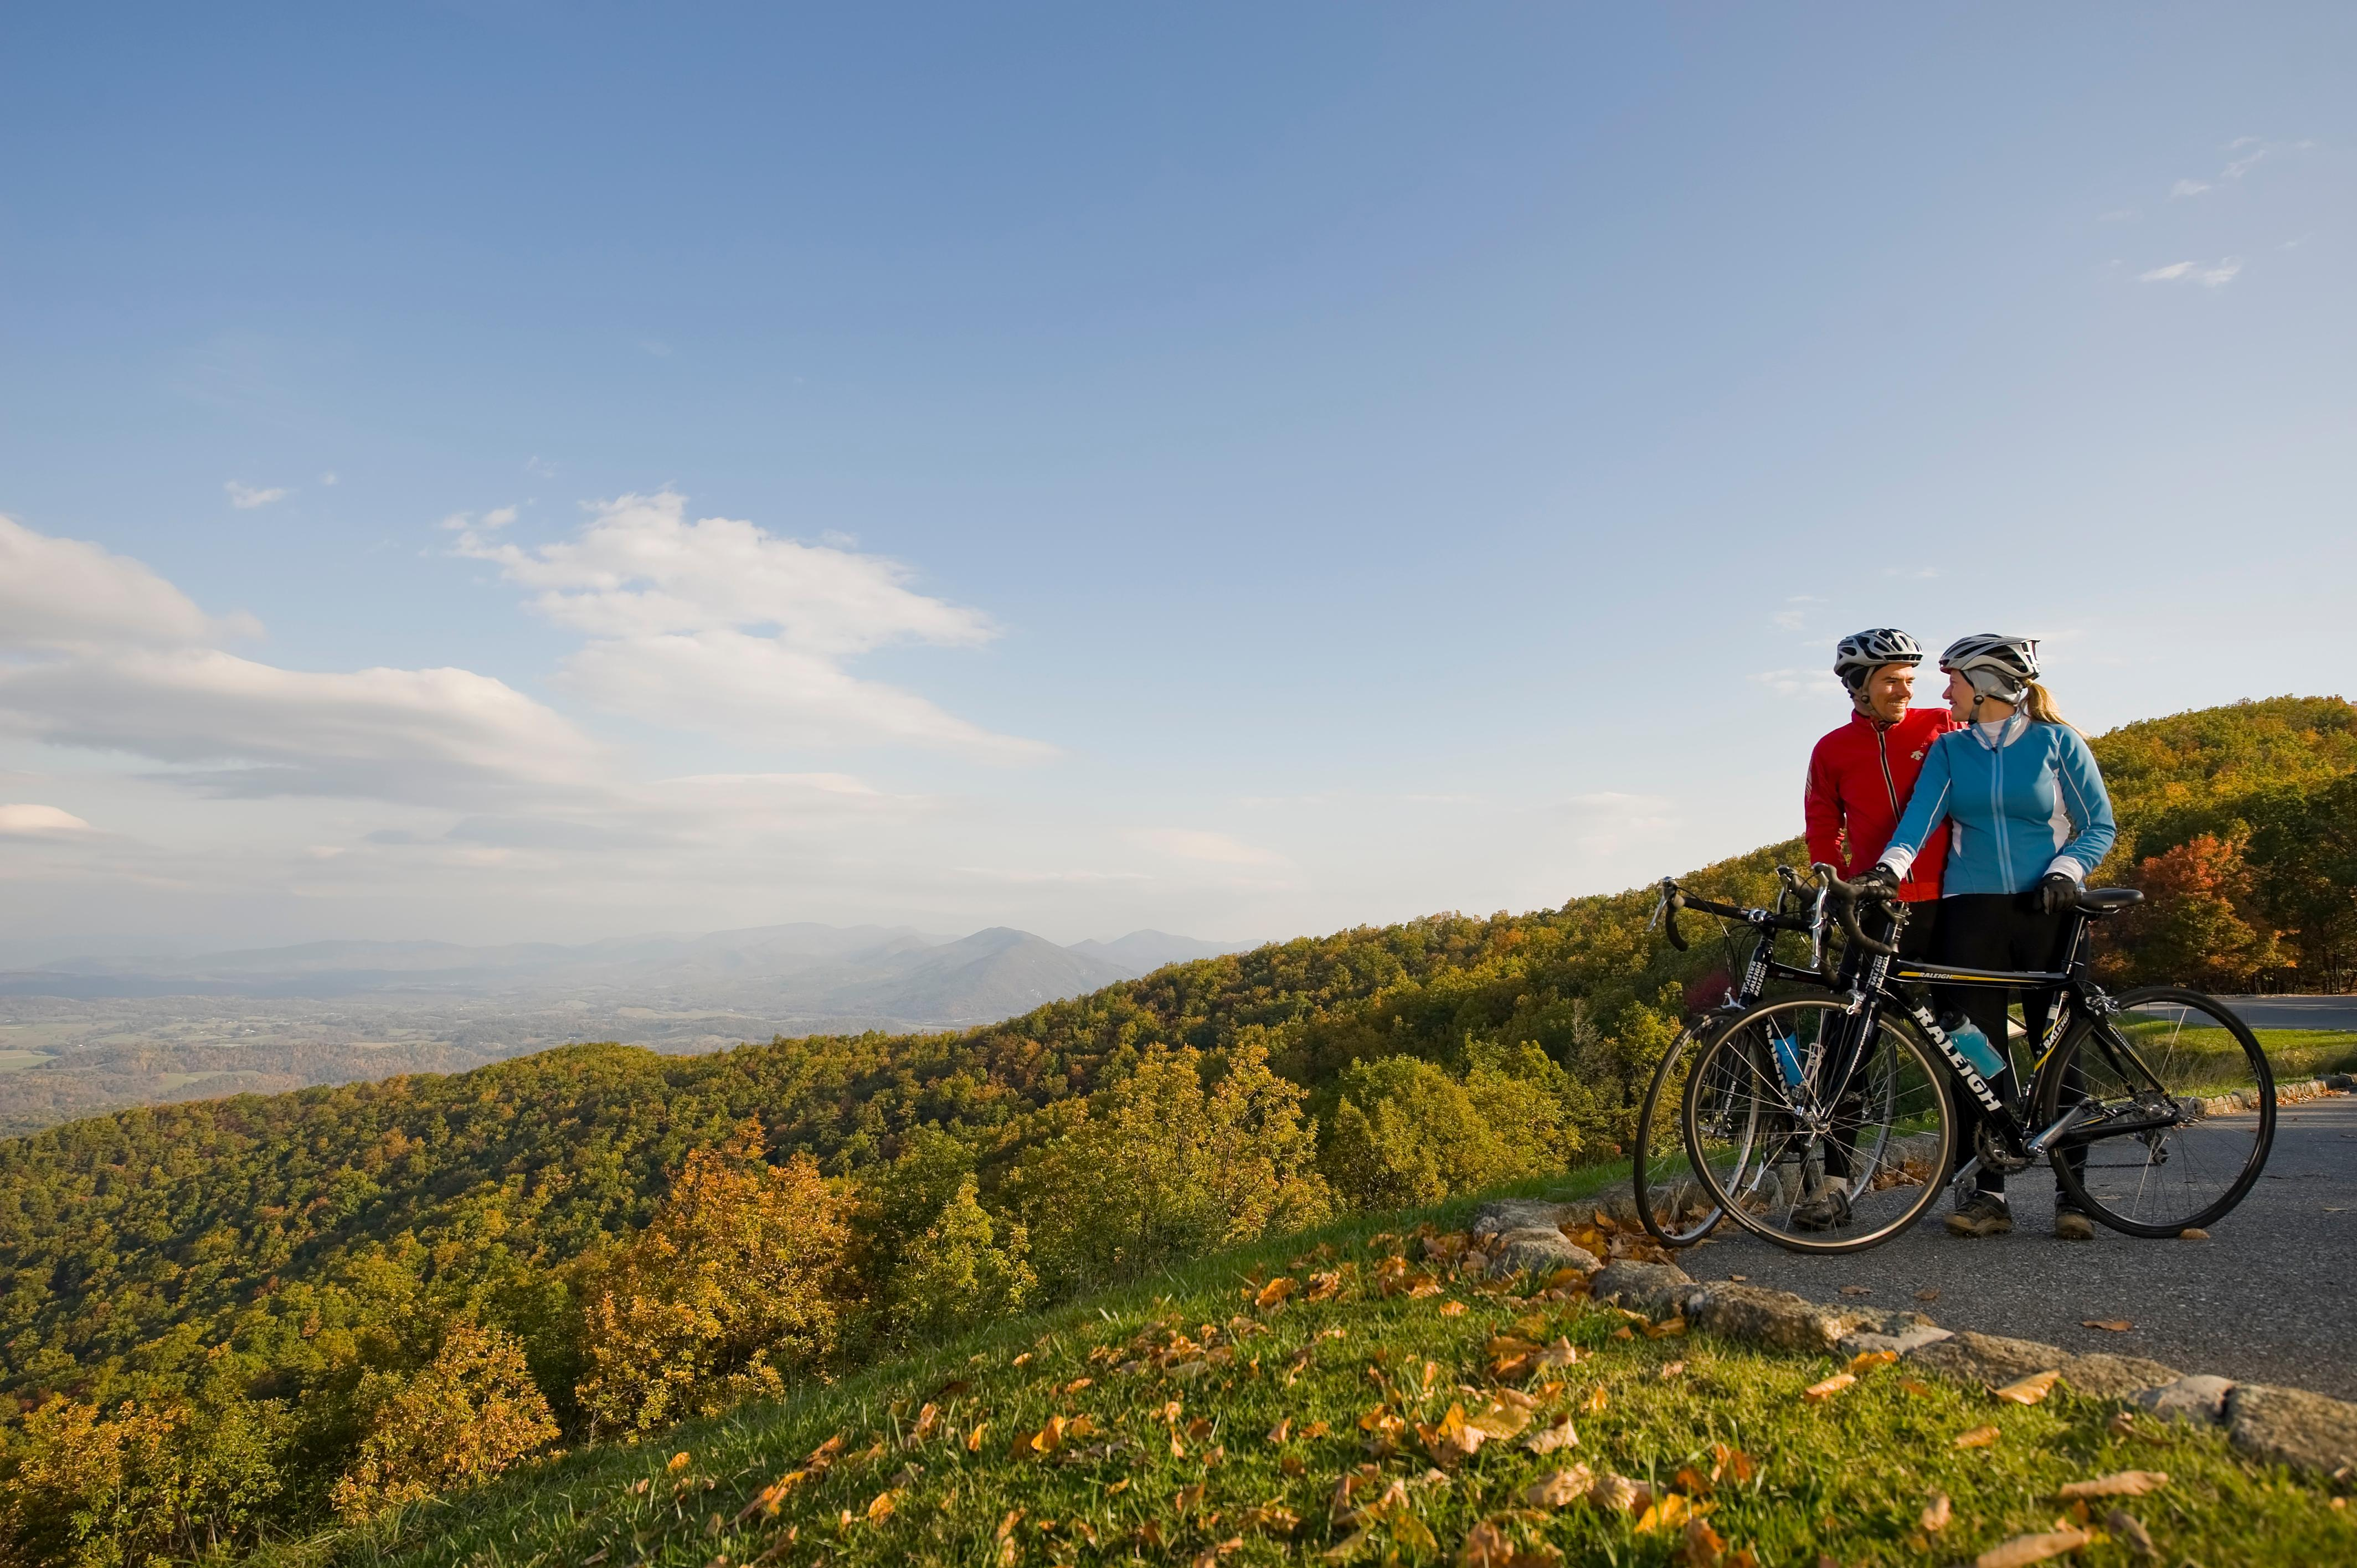 Bicyclists stop at an overlook on the Blue Ridge Parkway. (Image: Scott K. Brown)